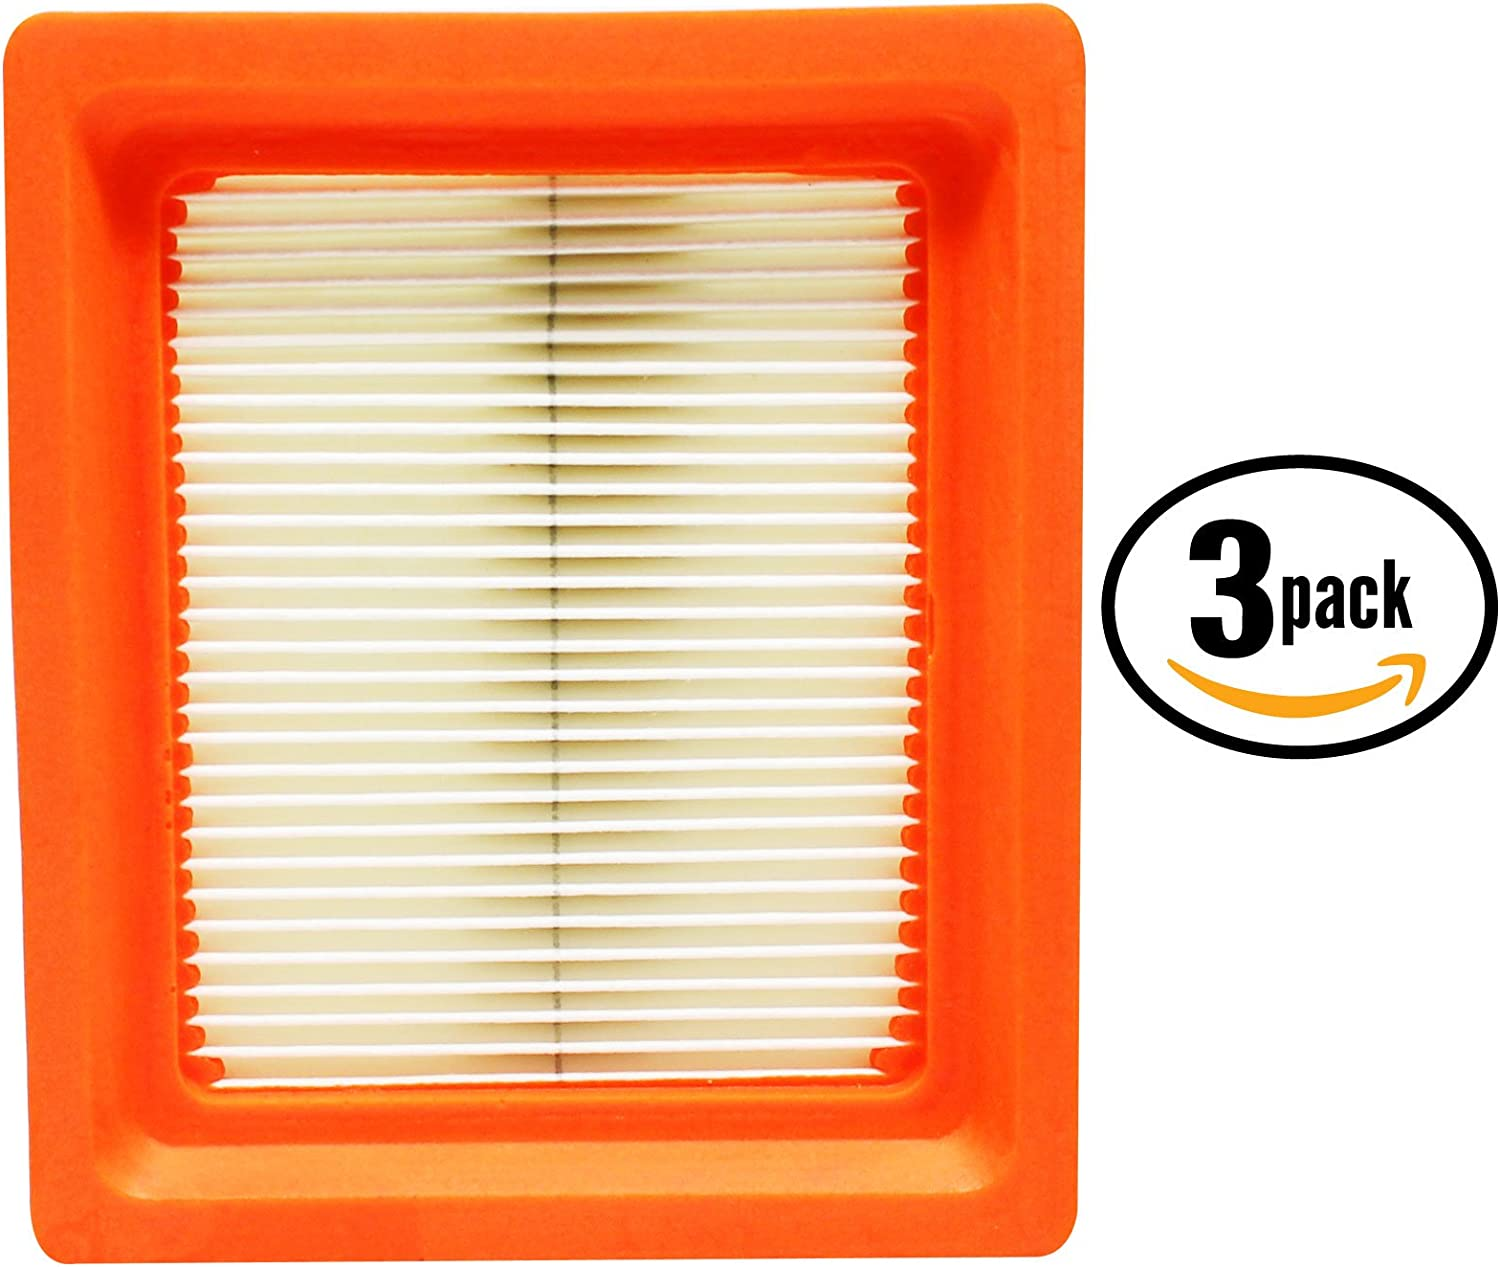 Lawnmower Air Filter for Kohler XT650-2022 Country Home Products XT675-2034 Toro